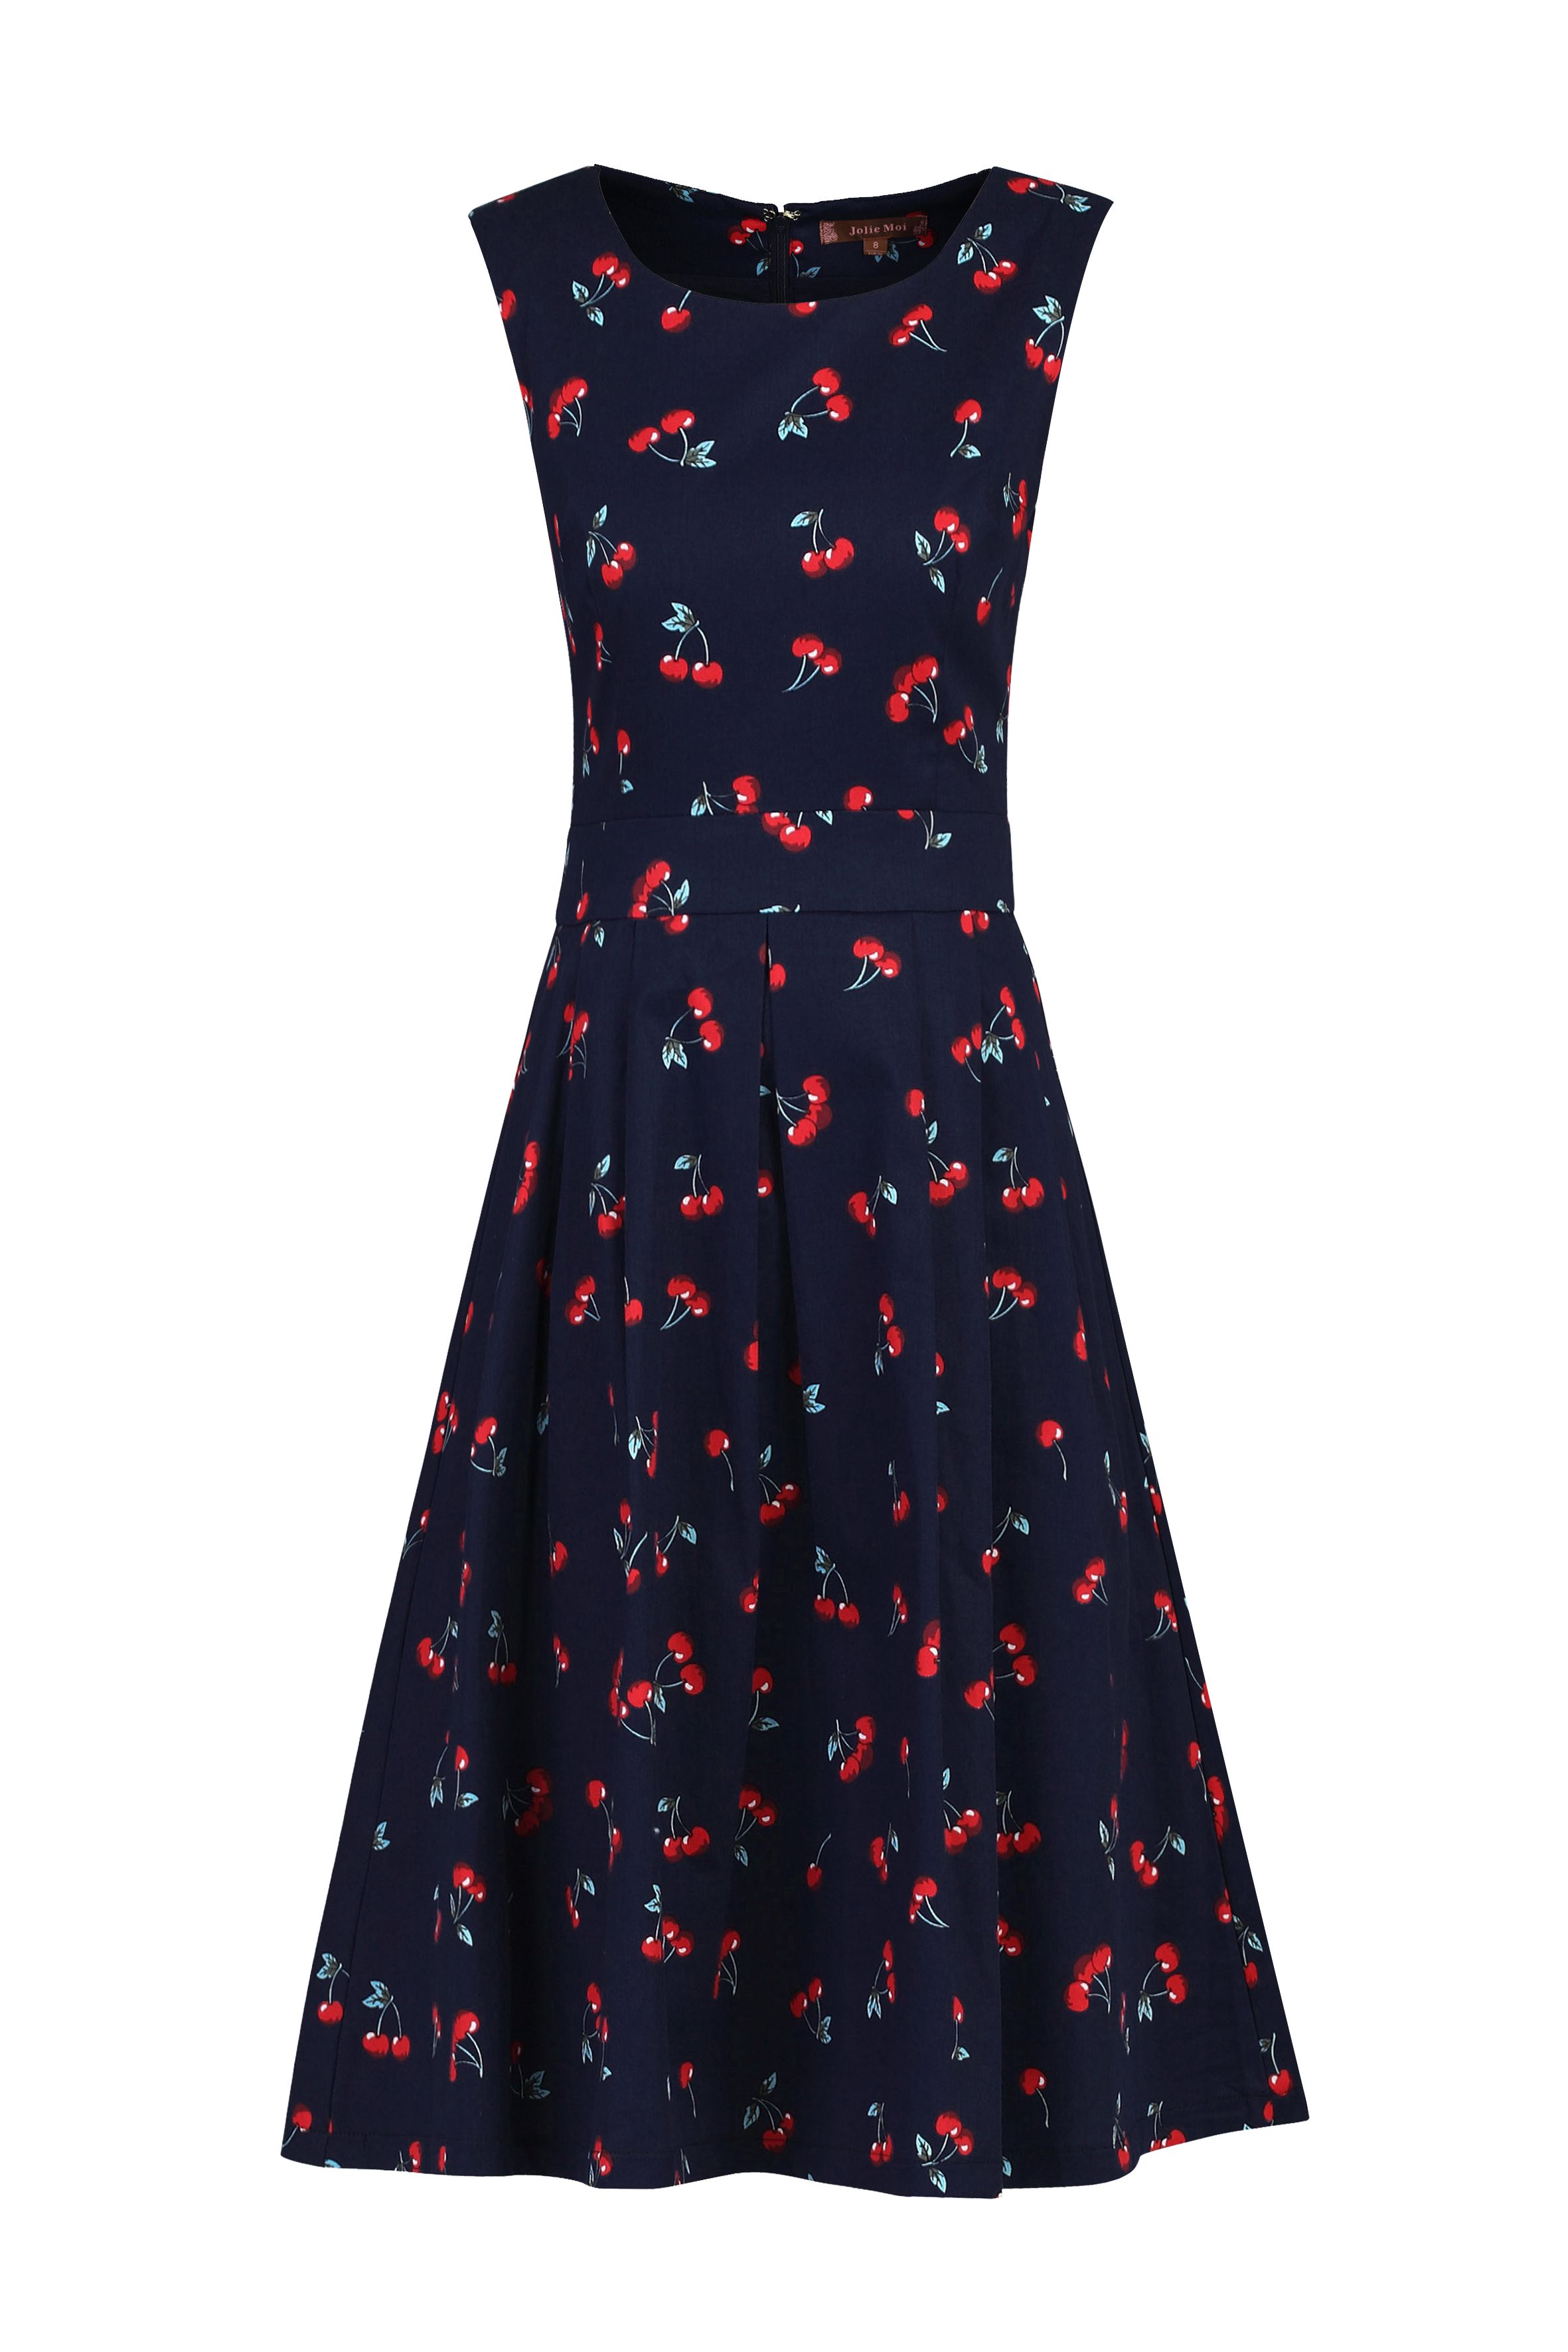 Jolie Moi Floral Print Pleated Swing Dress, Blue